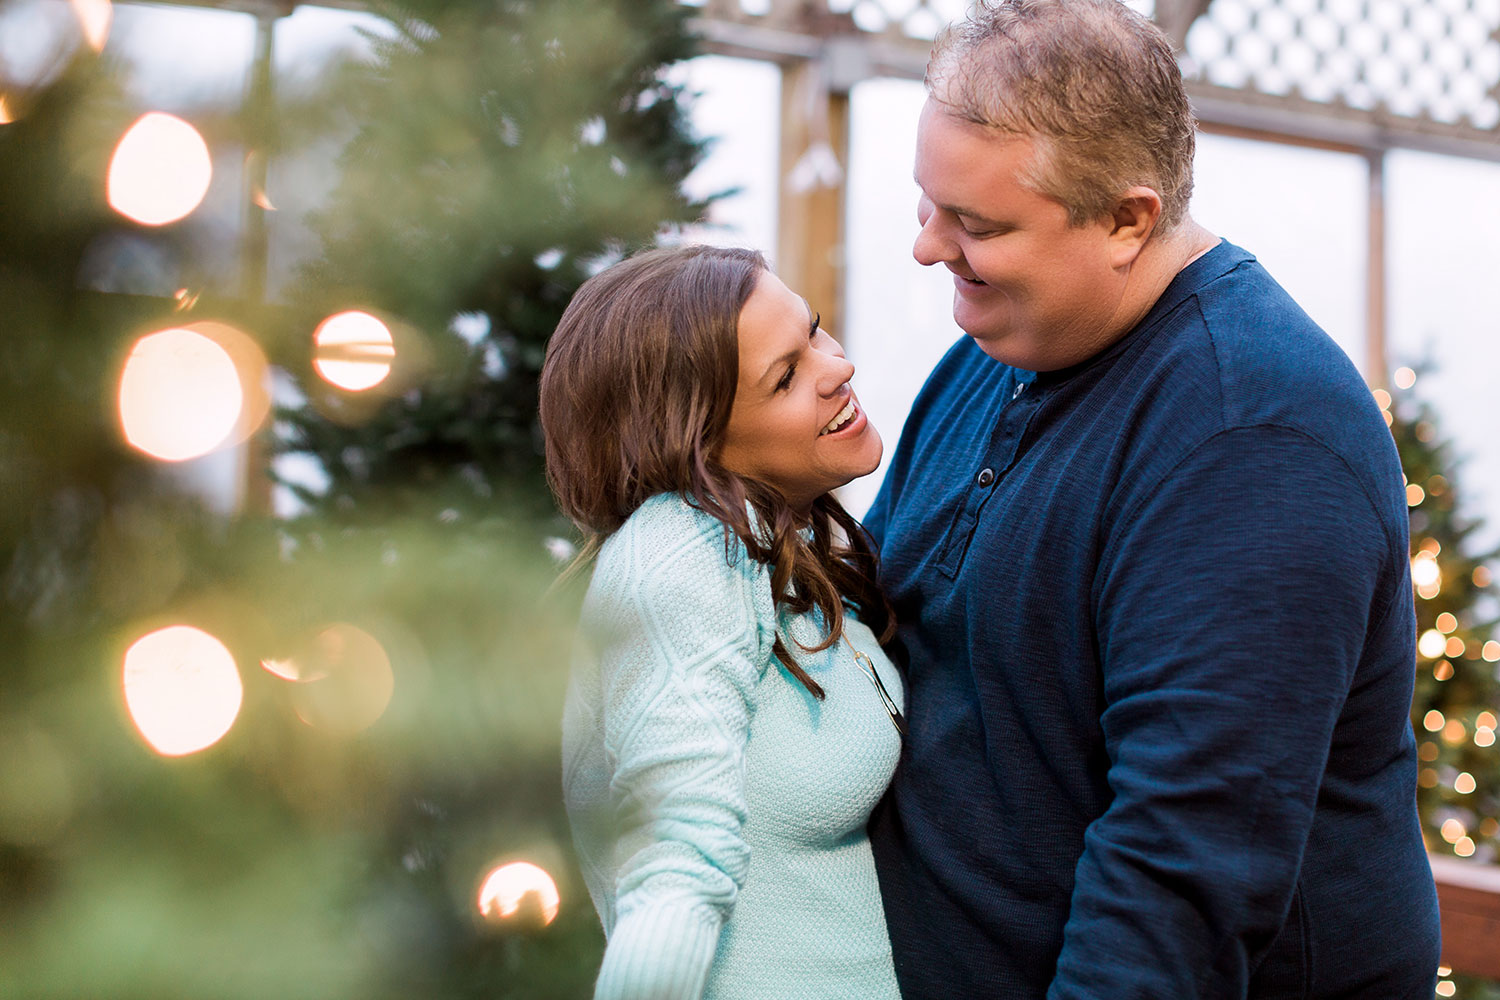 Mulhalls_Omaha_Fall_Engagement_Session_Kerry_Jay_23.jpg